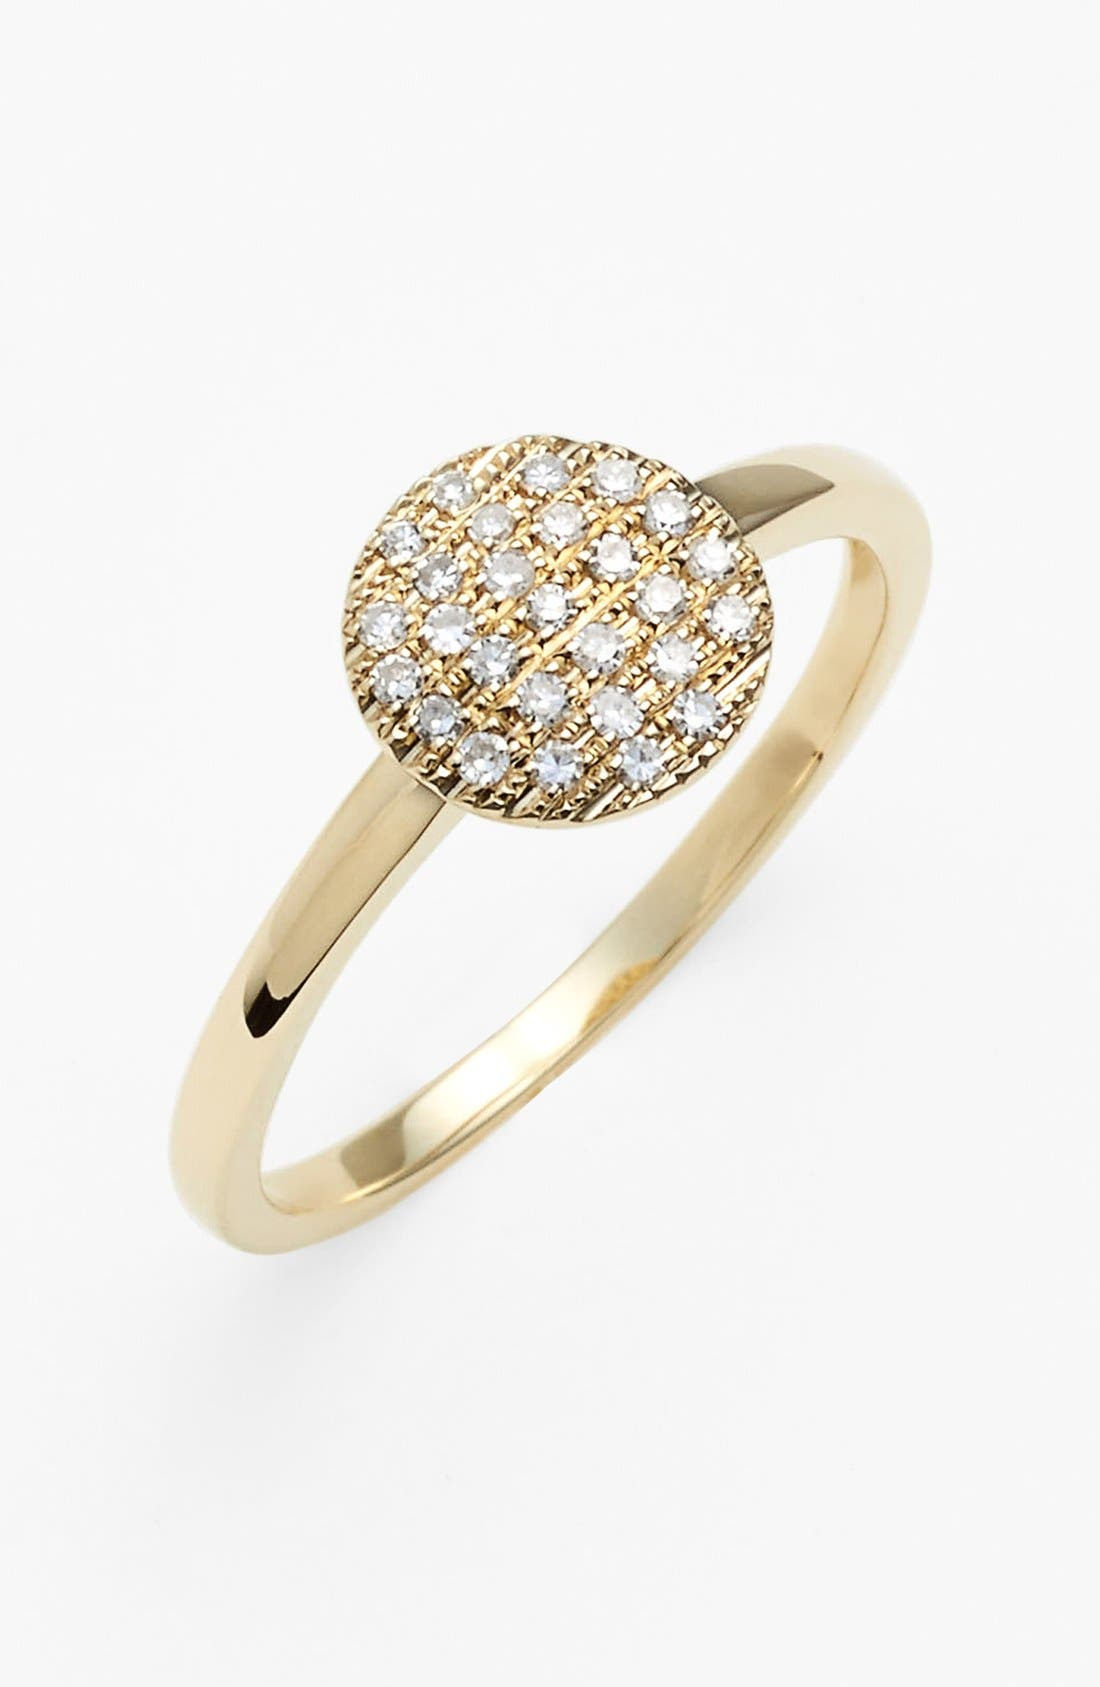 Main Image - Dana Rebecca Designs 'Lauren Joy' Diamond Ring